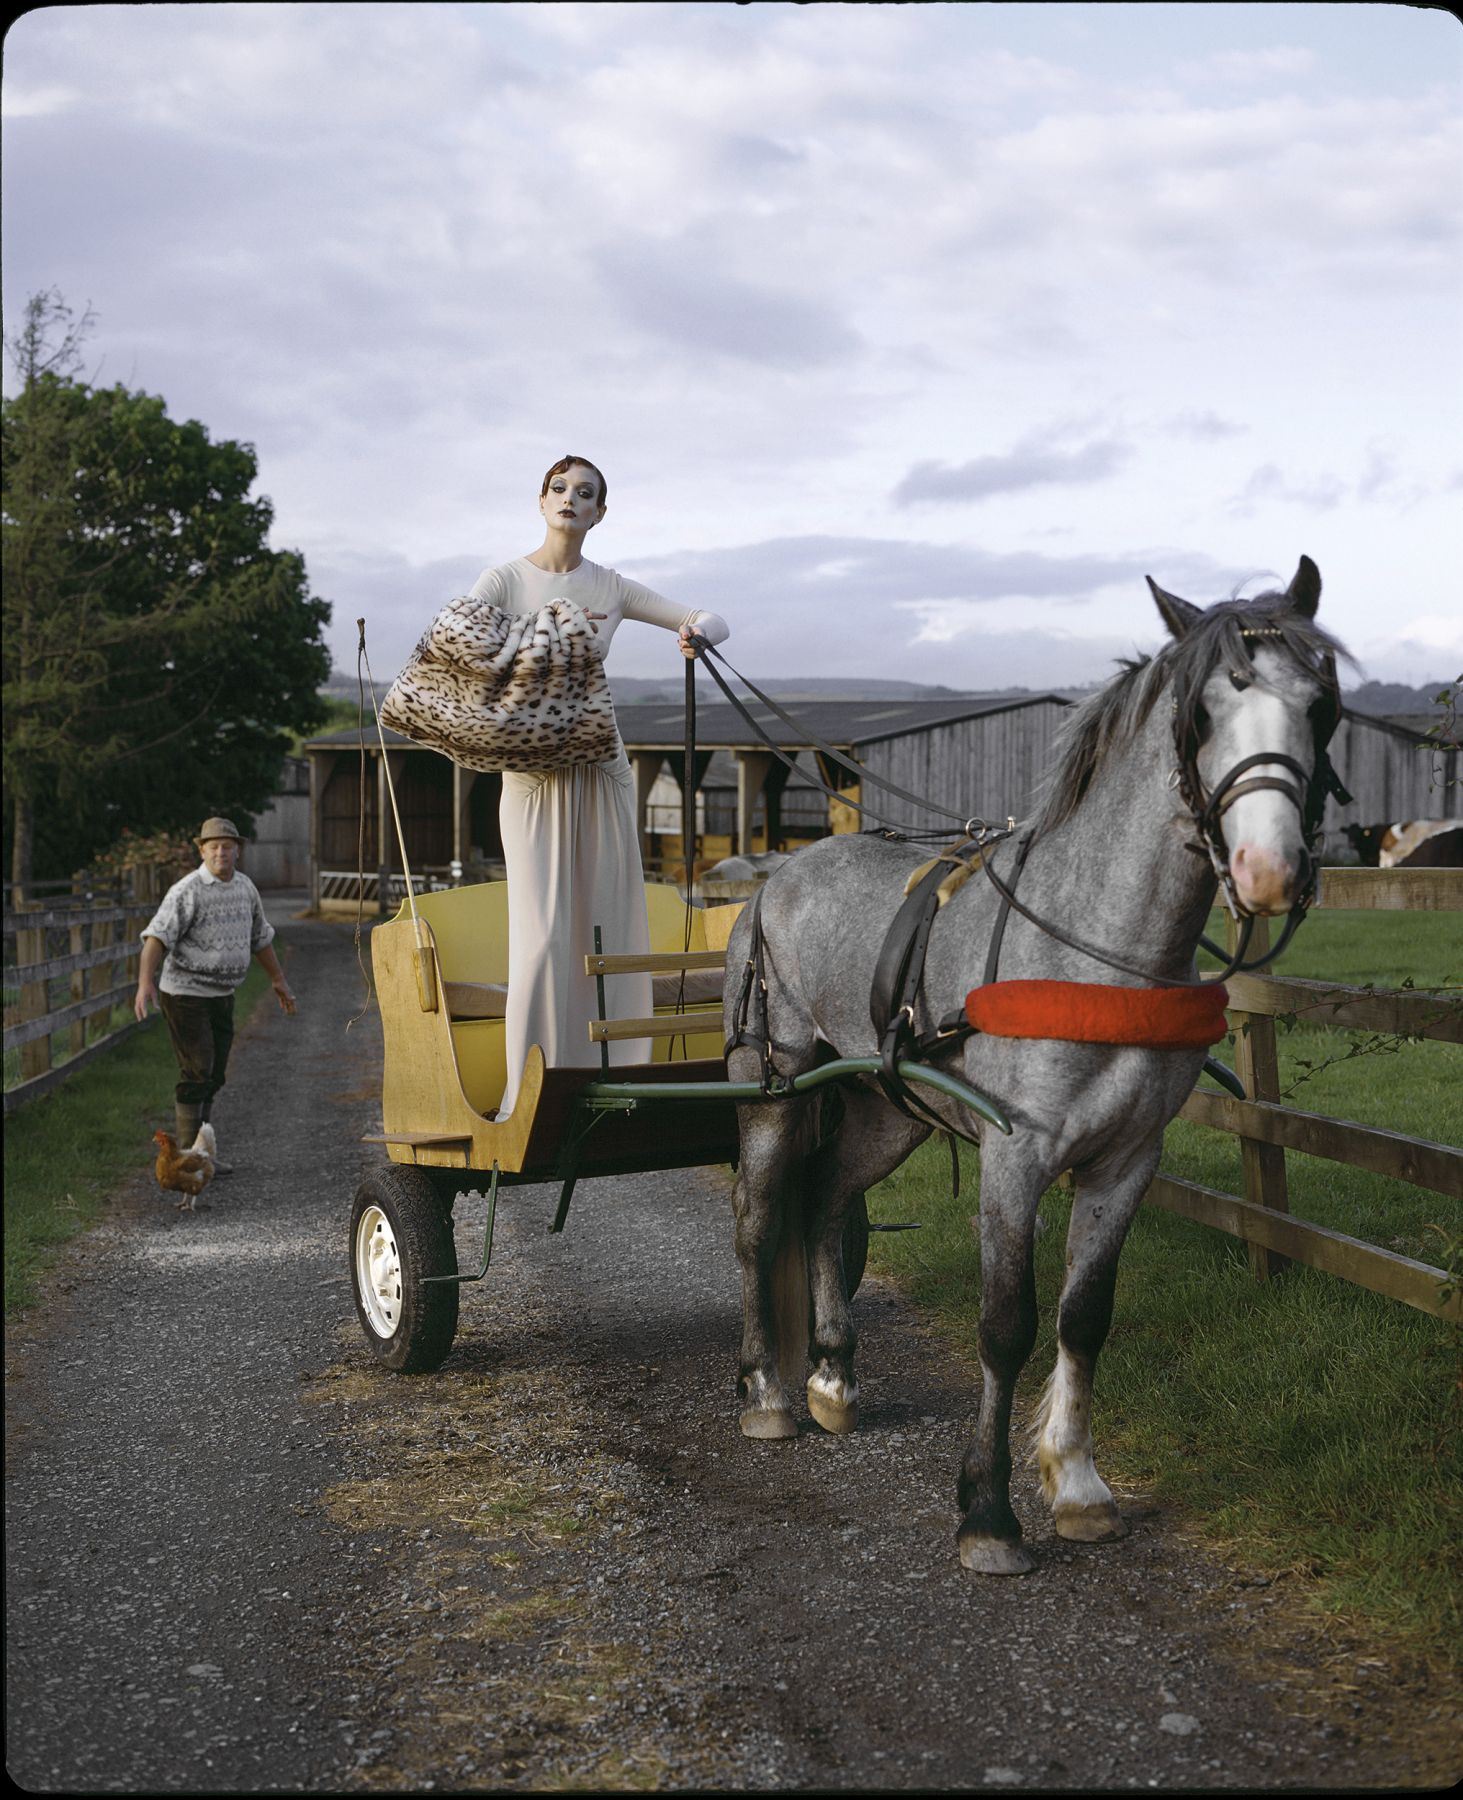 Model in a Horse Buggy, England, 1995, Archival Pigment Print